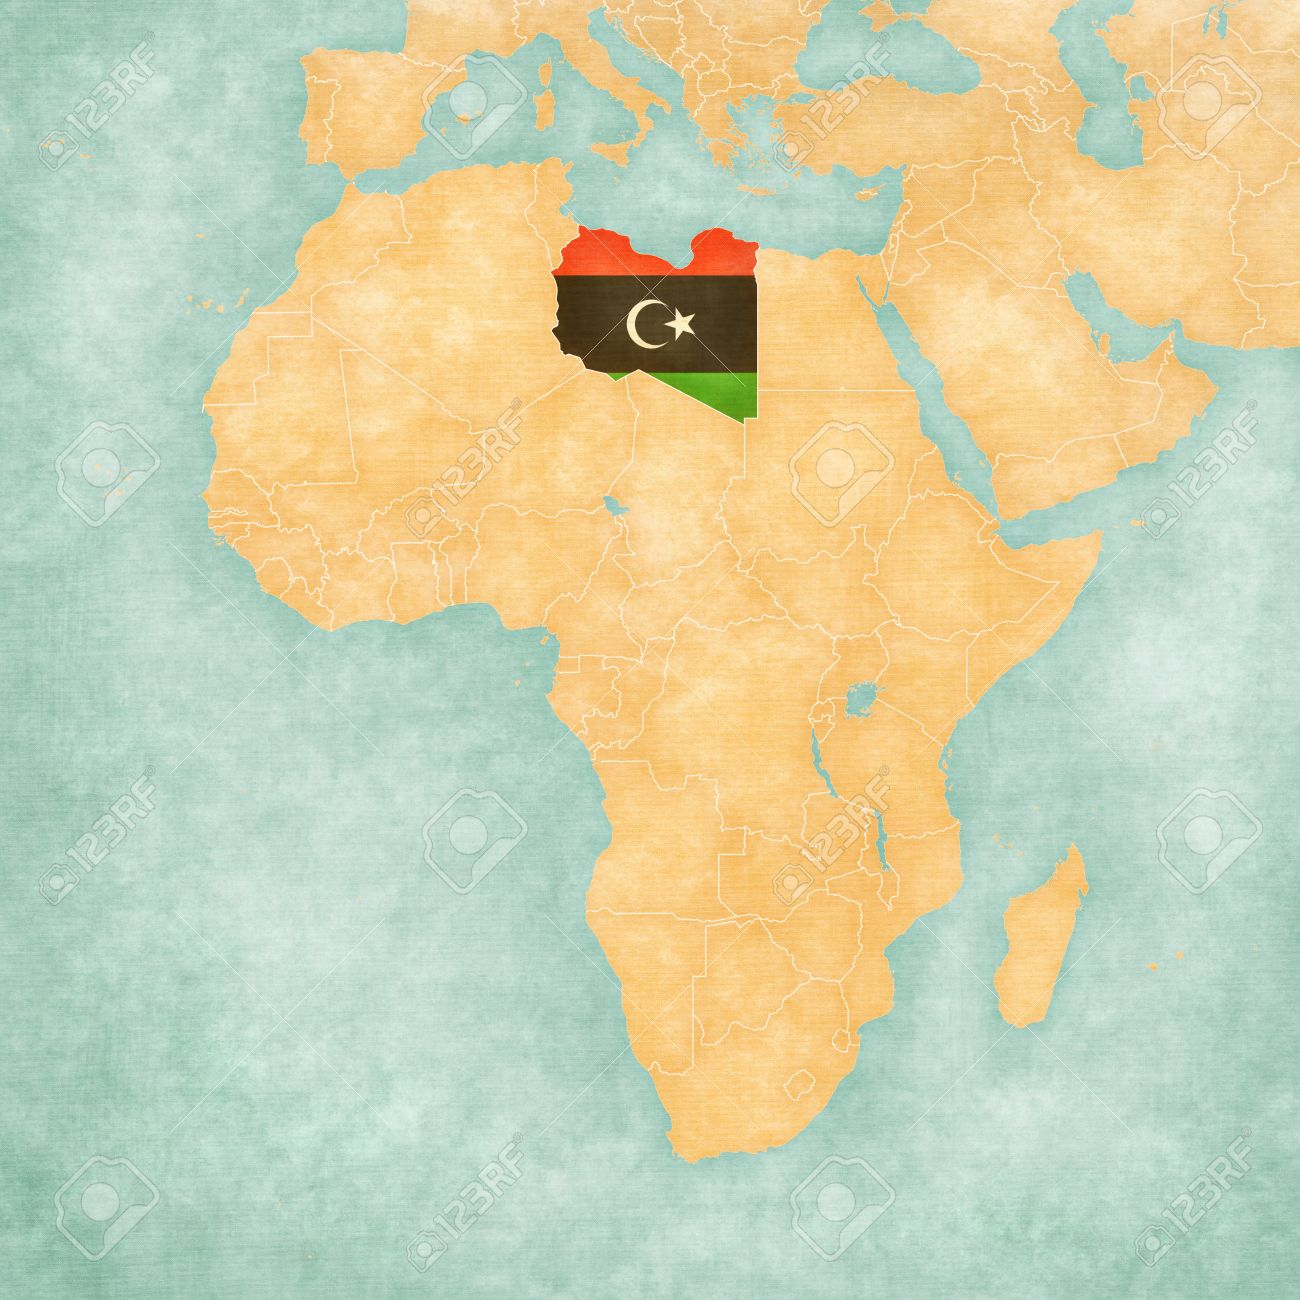 Libya On Map Of Africa Libya (Libyan Flag) On The Map Of Africa. The Map Is In Soft